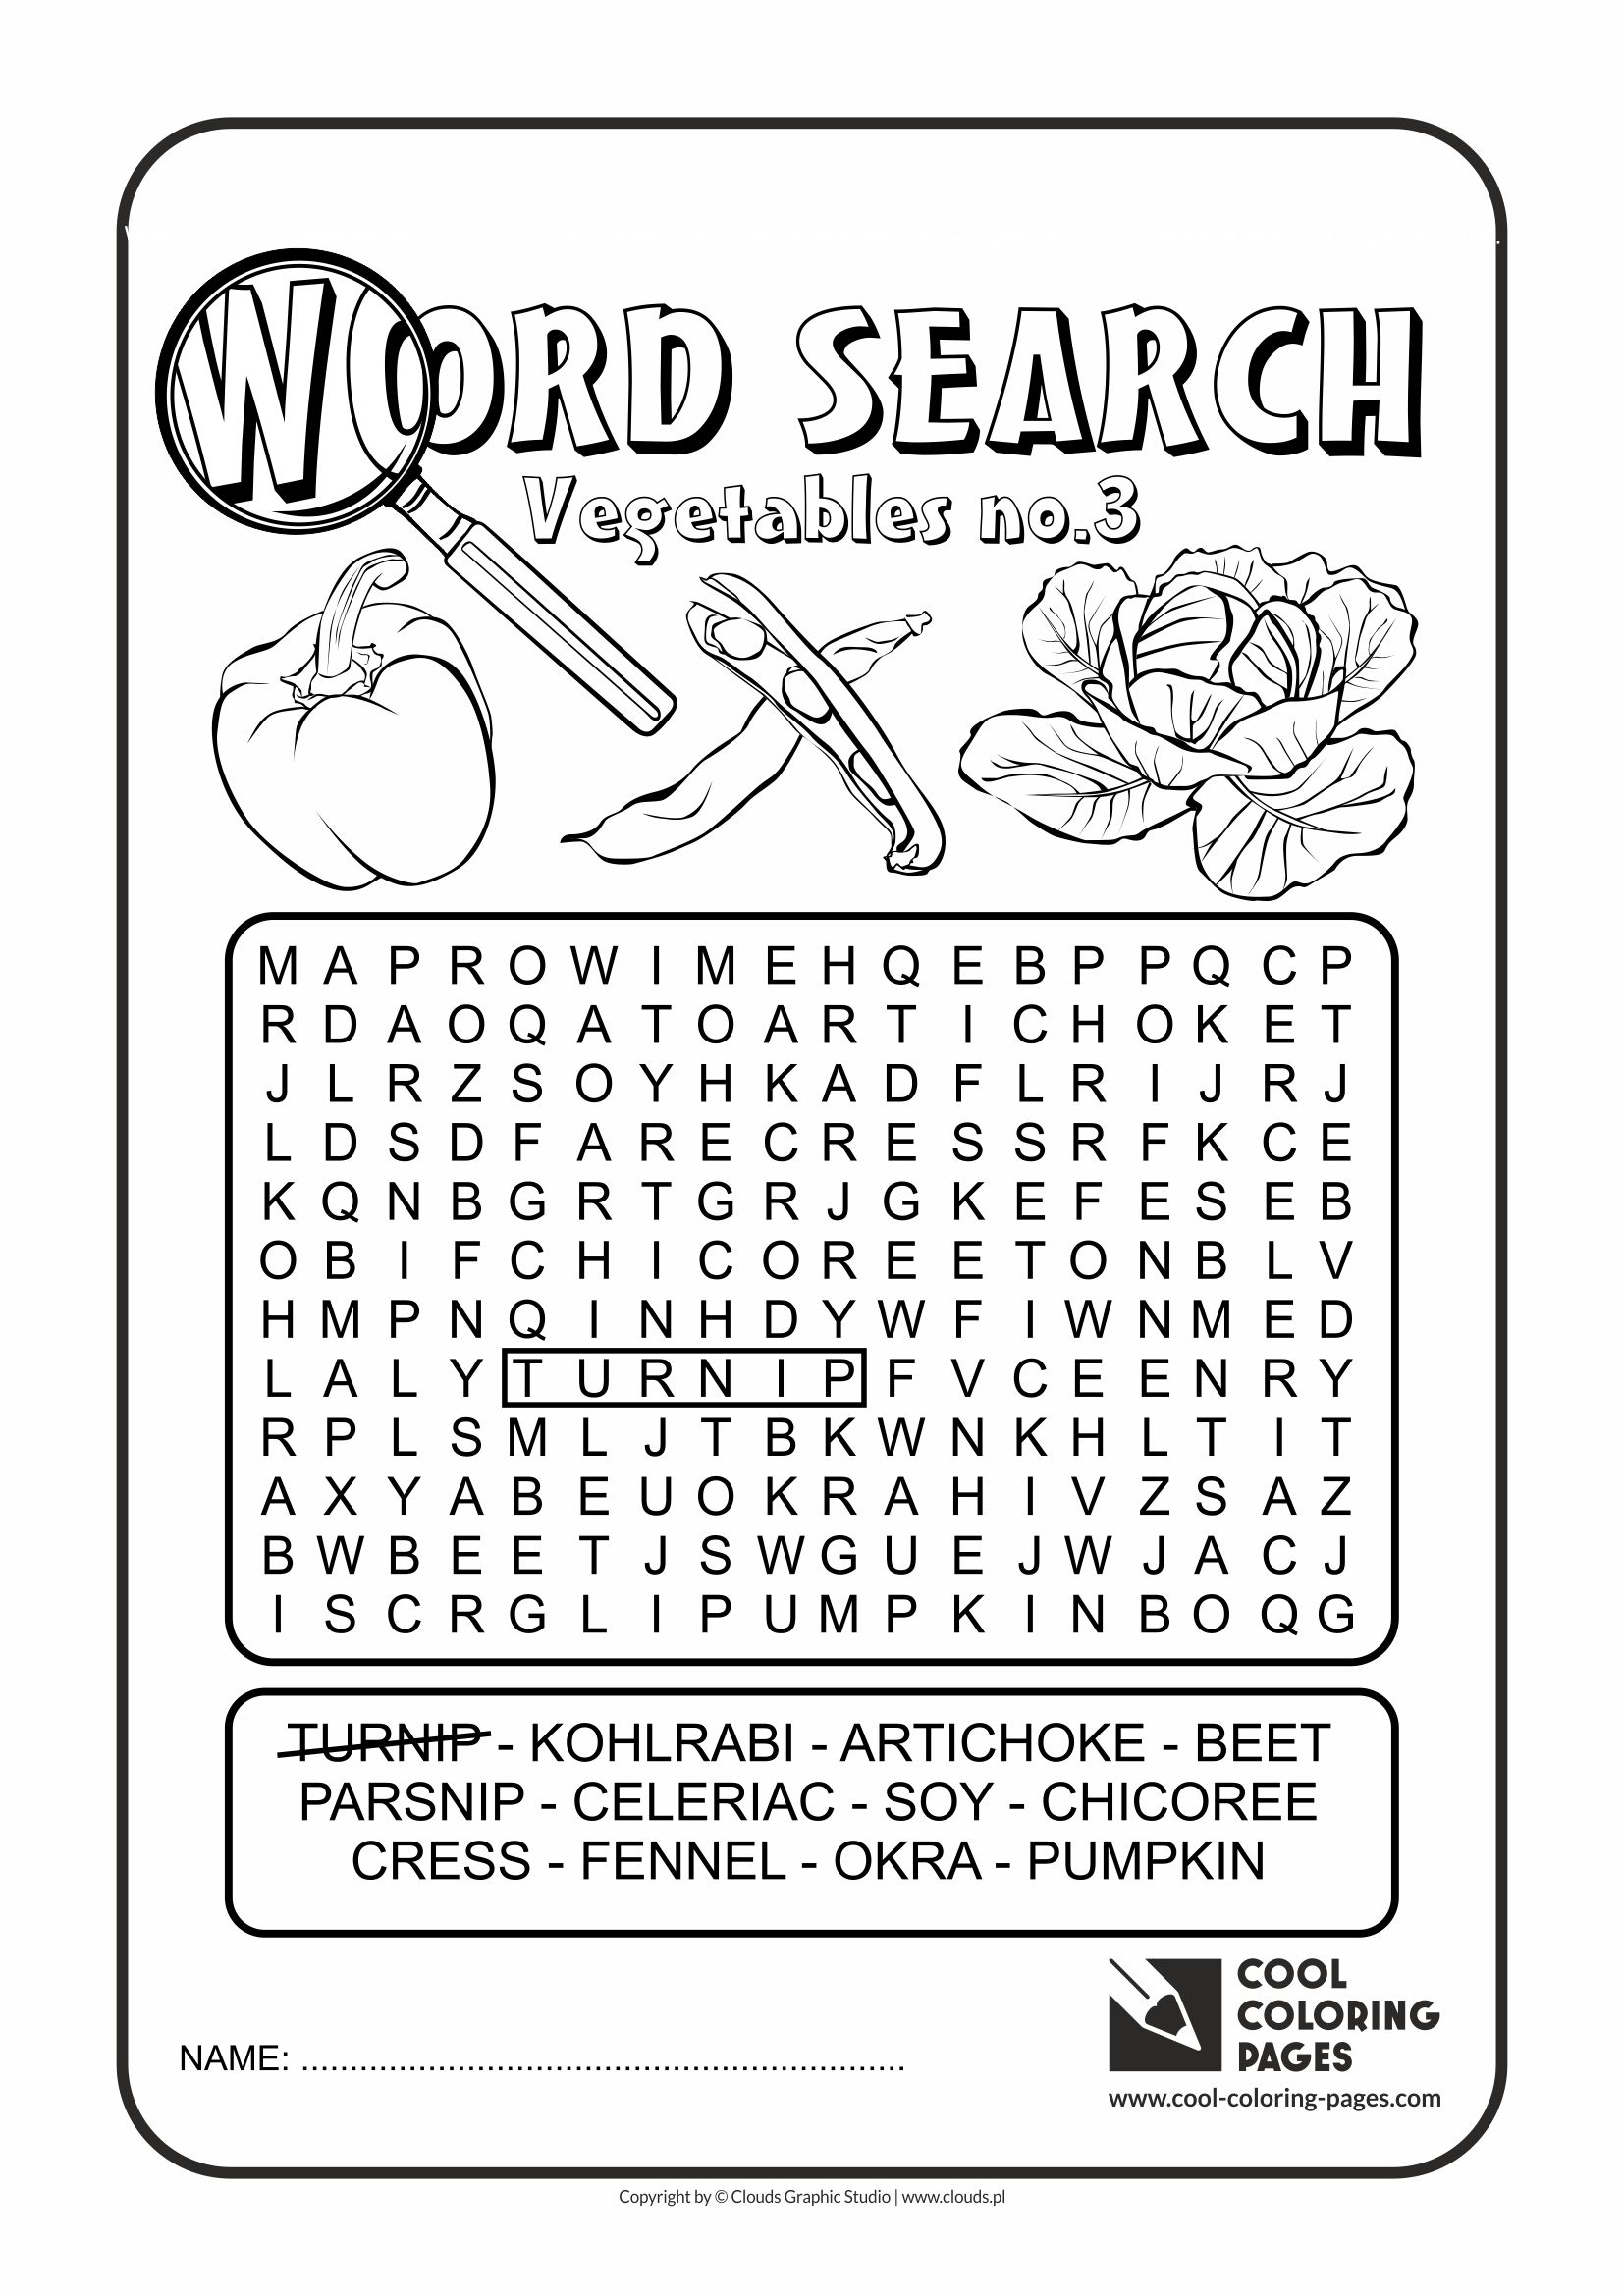 Cool Coloring Pages - Word search / Word search vegetables no 3 / Coloring page with word search vegetables no 3